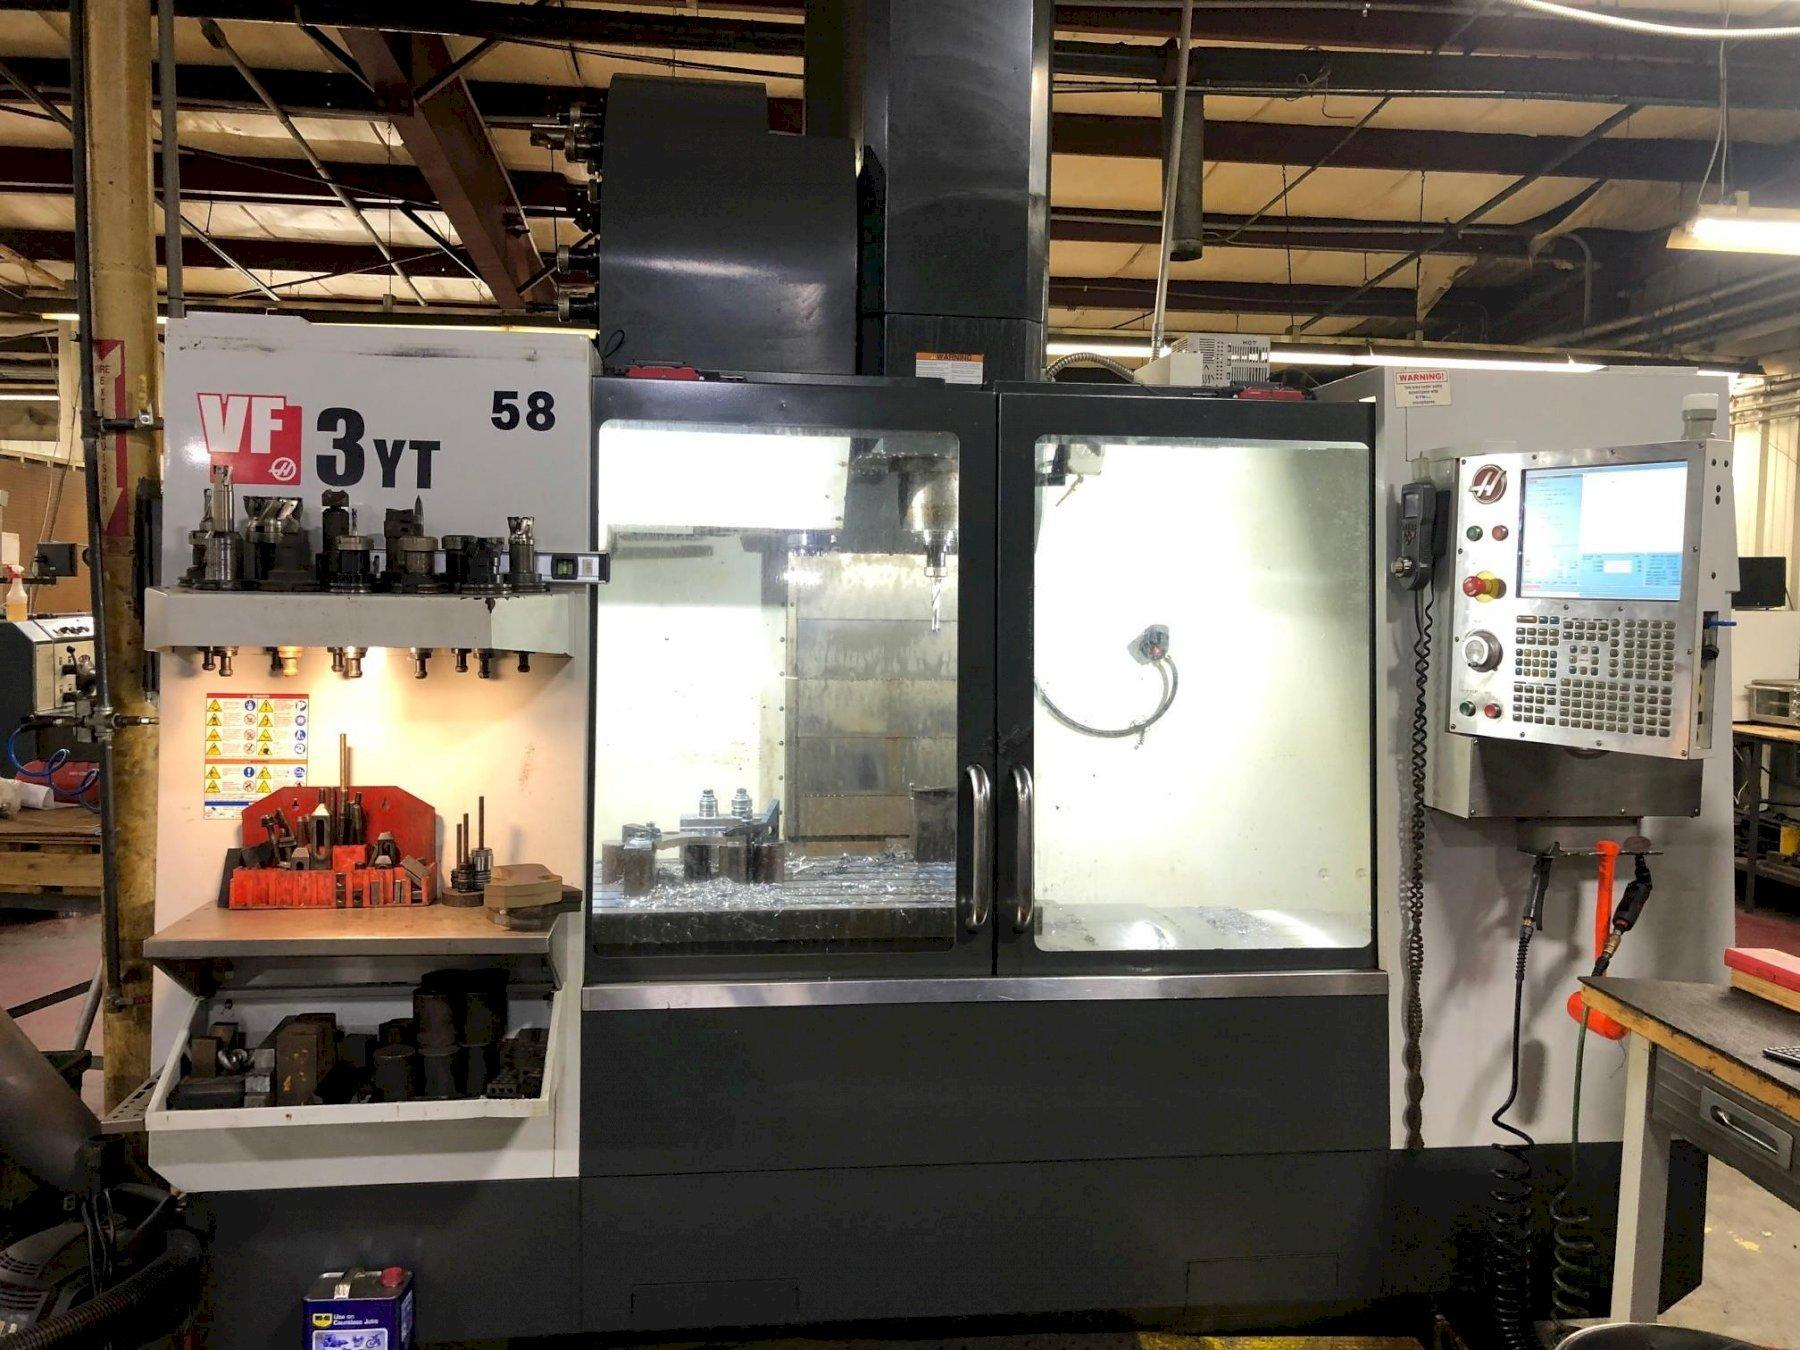 HAAS MDL. VF-3 YT/50 CNC VERTICAL MACHINING CENTER, 8,100 RPM, 30- ATC, HAAS CNC CTRL, Probe, Wired 4th, 30HP New 2012